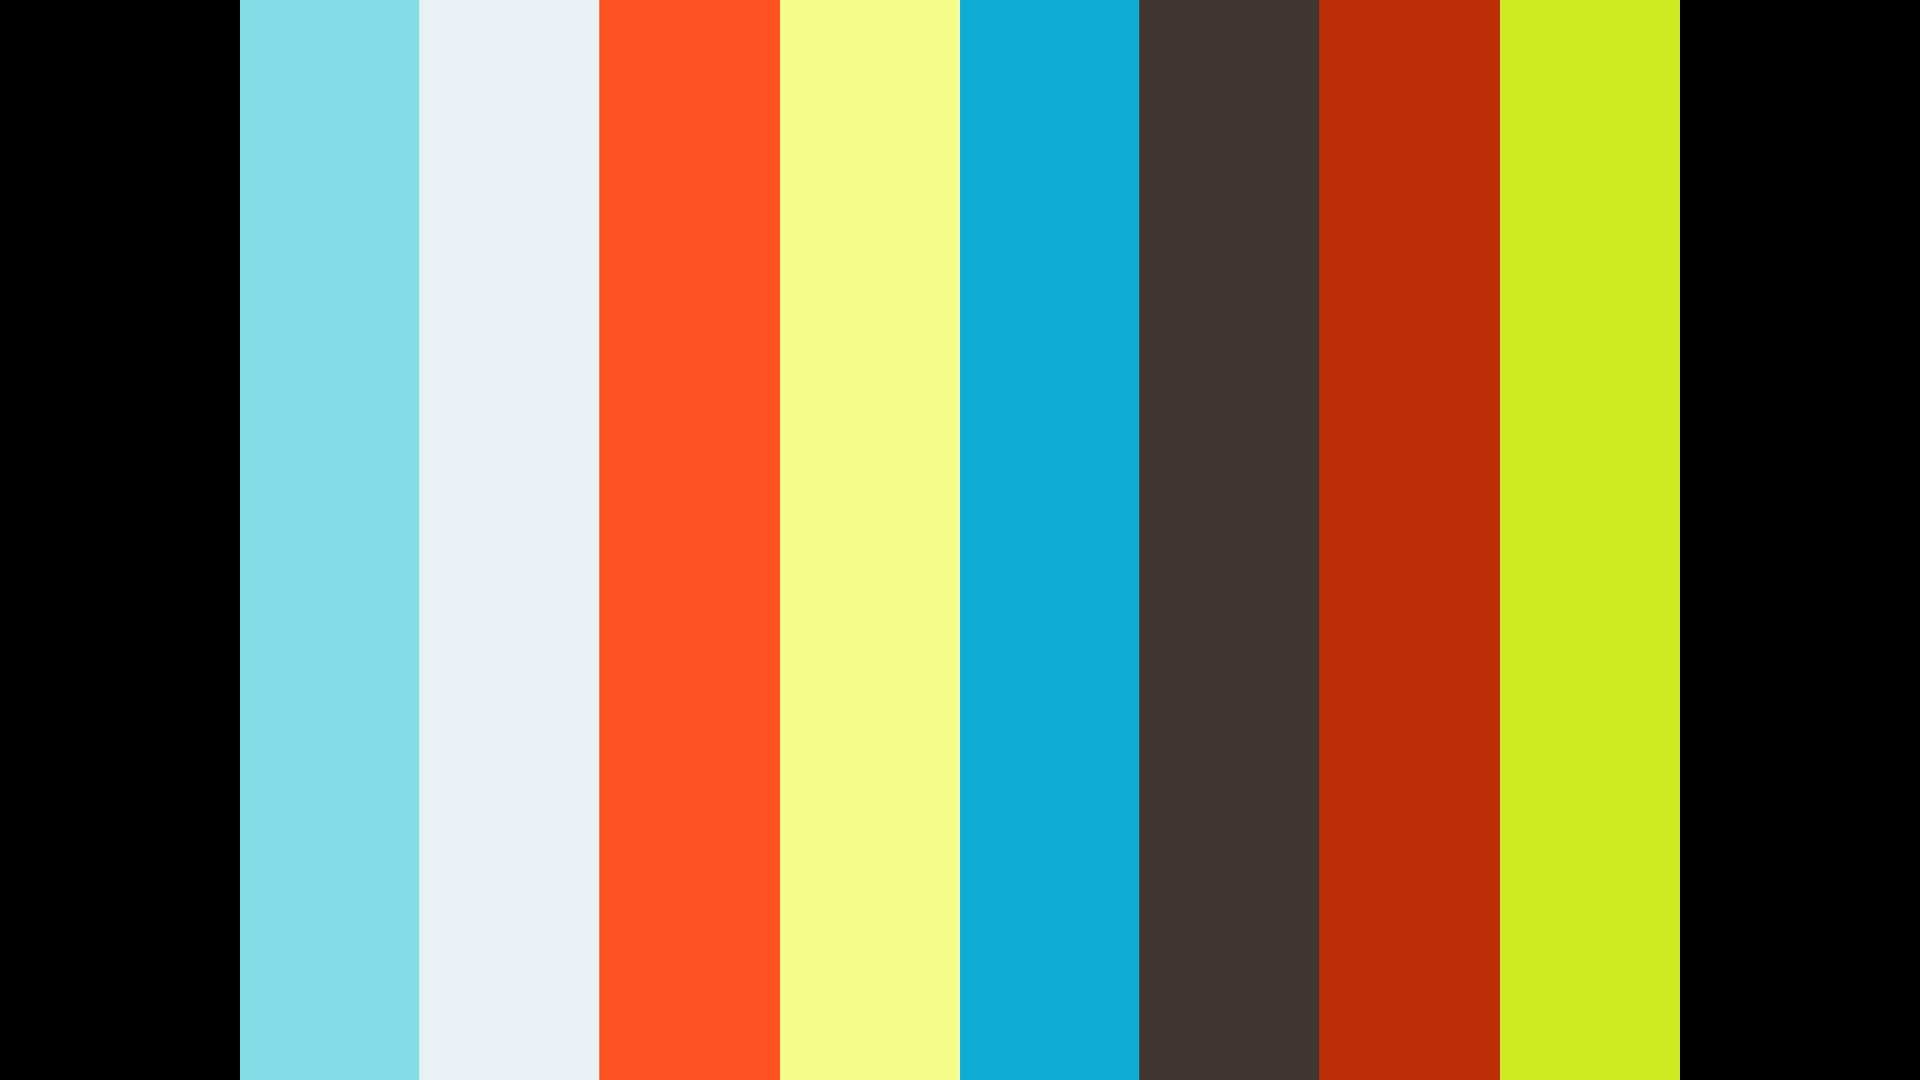 NEWS 18 India Hosts a Grand Evening of Glamour & Entertainment-4mp4